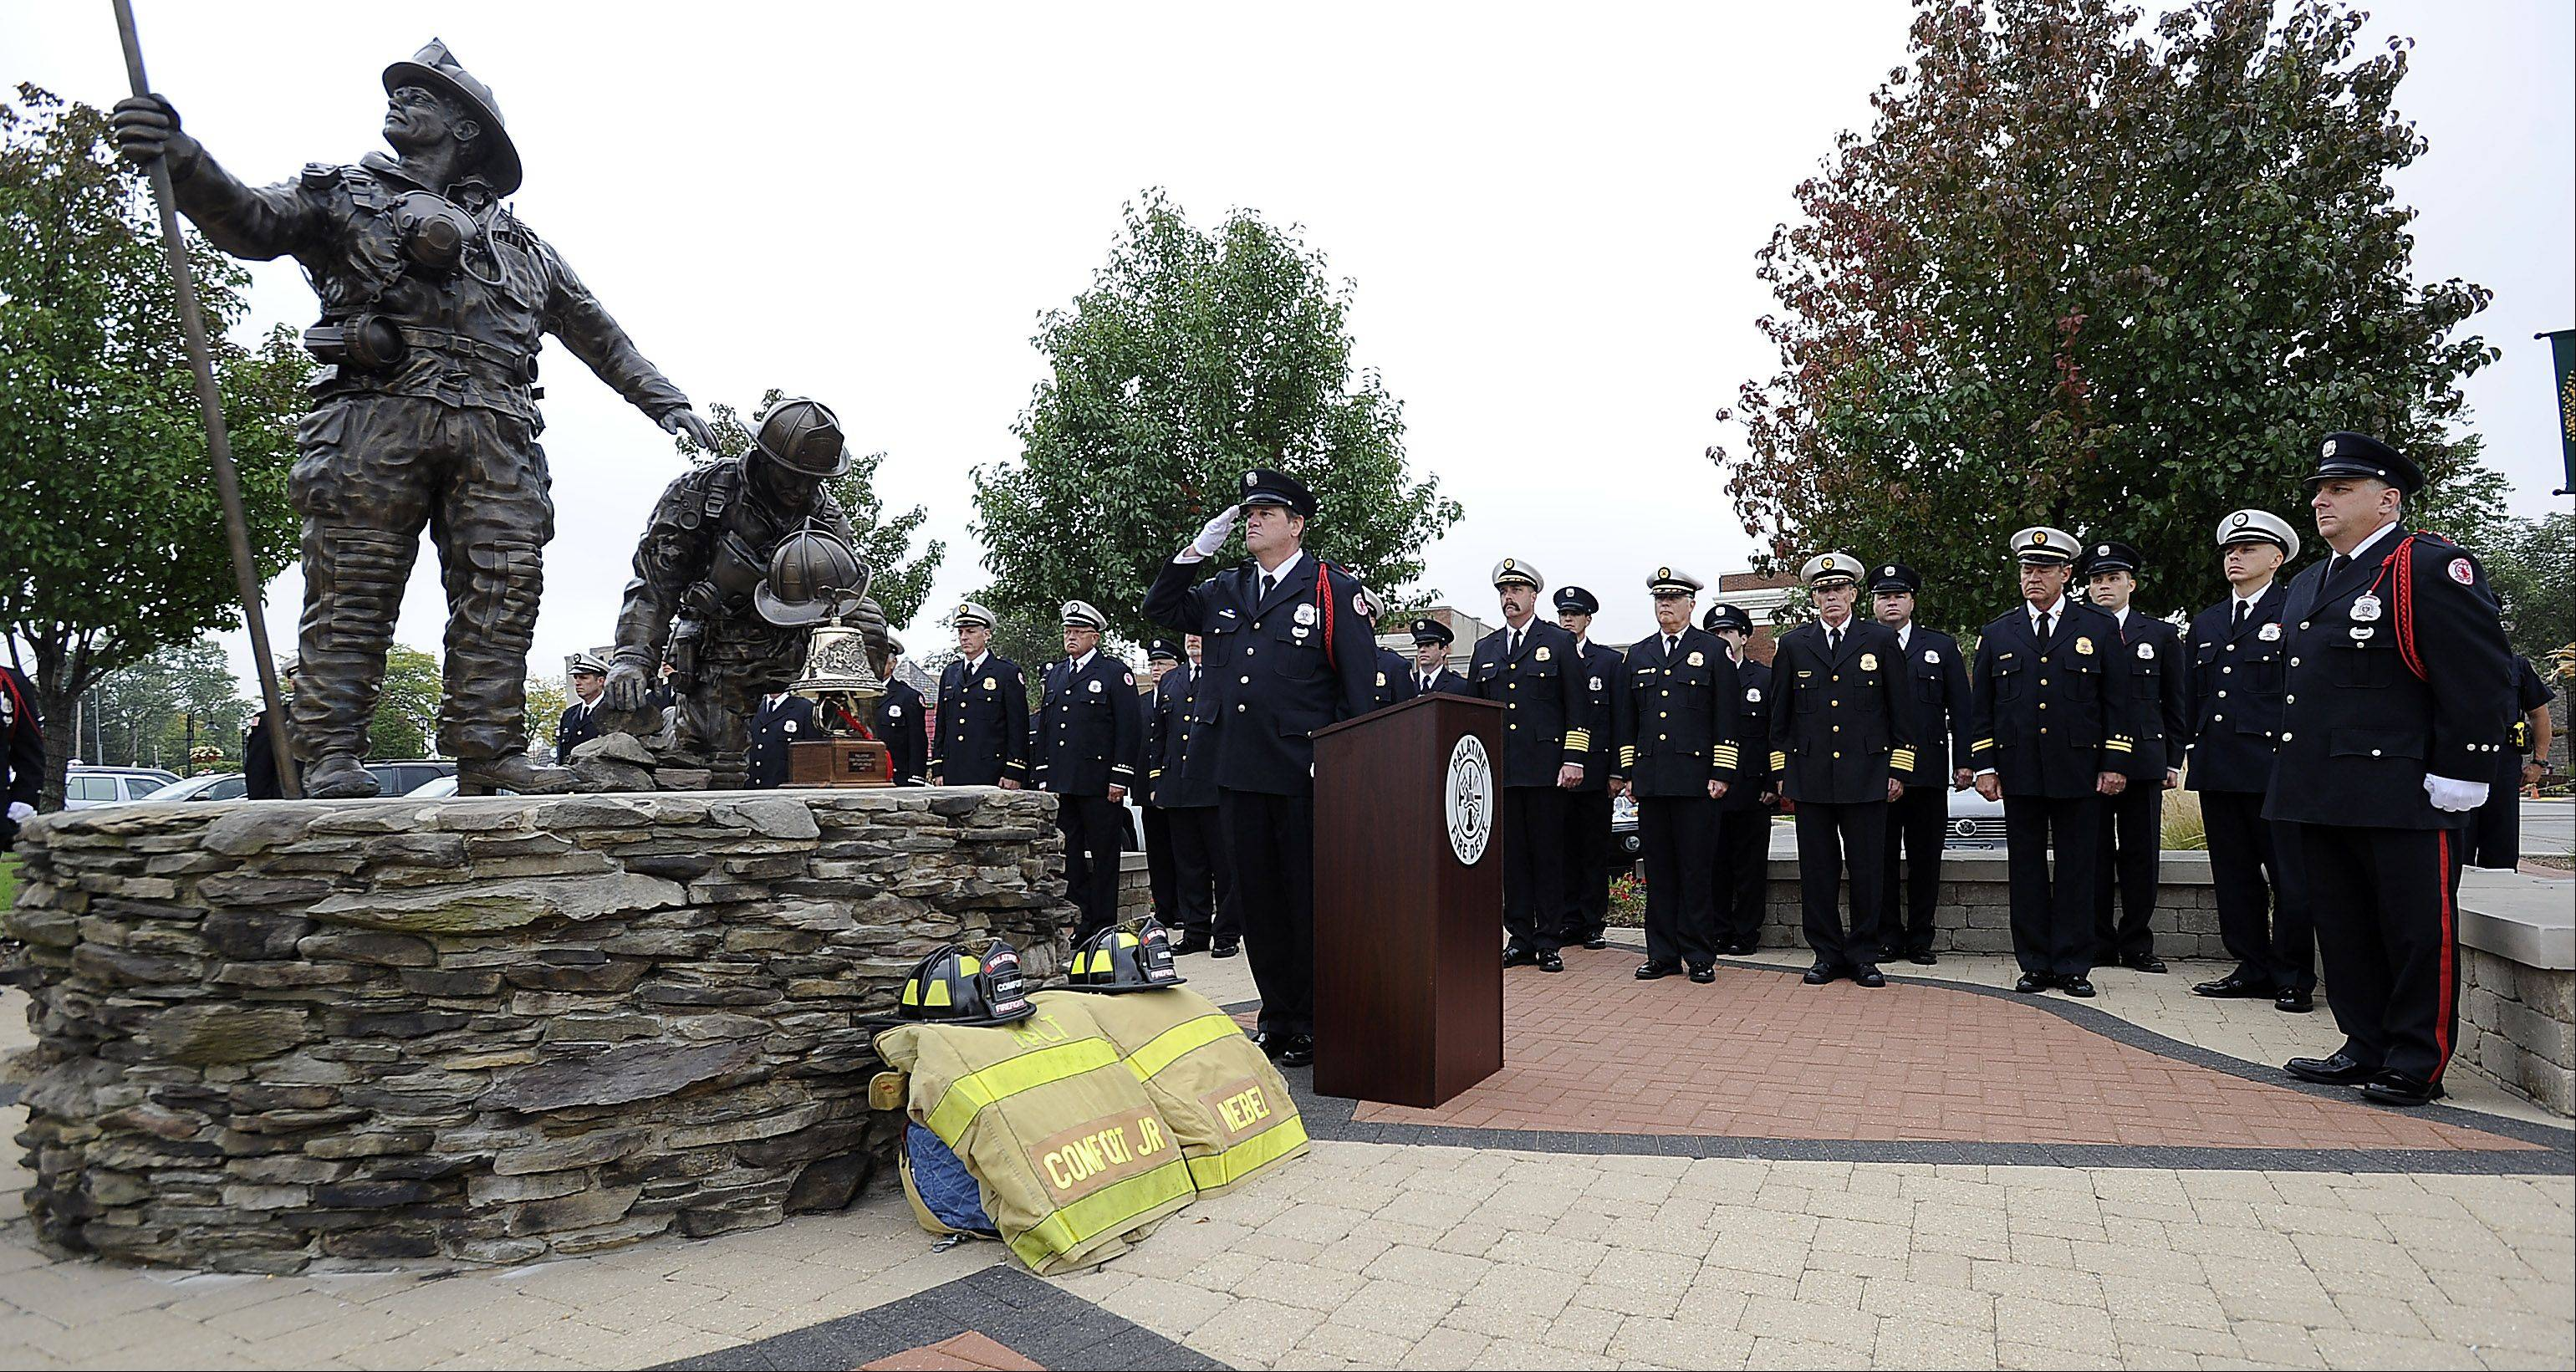 Retired Palatine firefighter/paramedic Mark Hallett salutes during a ceremony Tuesday morning at the Firefighter's Memorial near the railroad crossing in downtown Palatine where a passenger train struck a fire truck on Oct. 1, 1946.